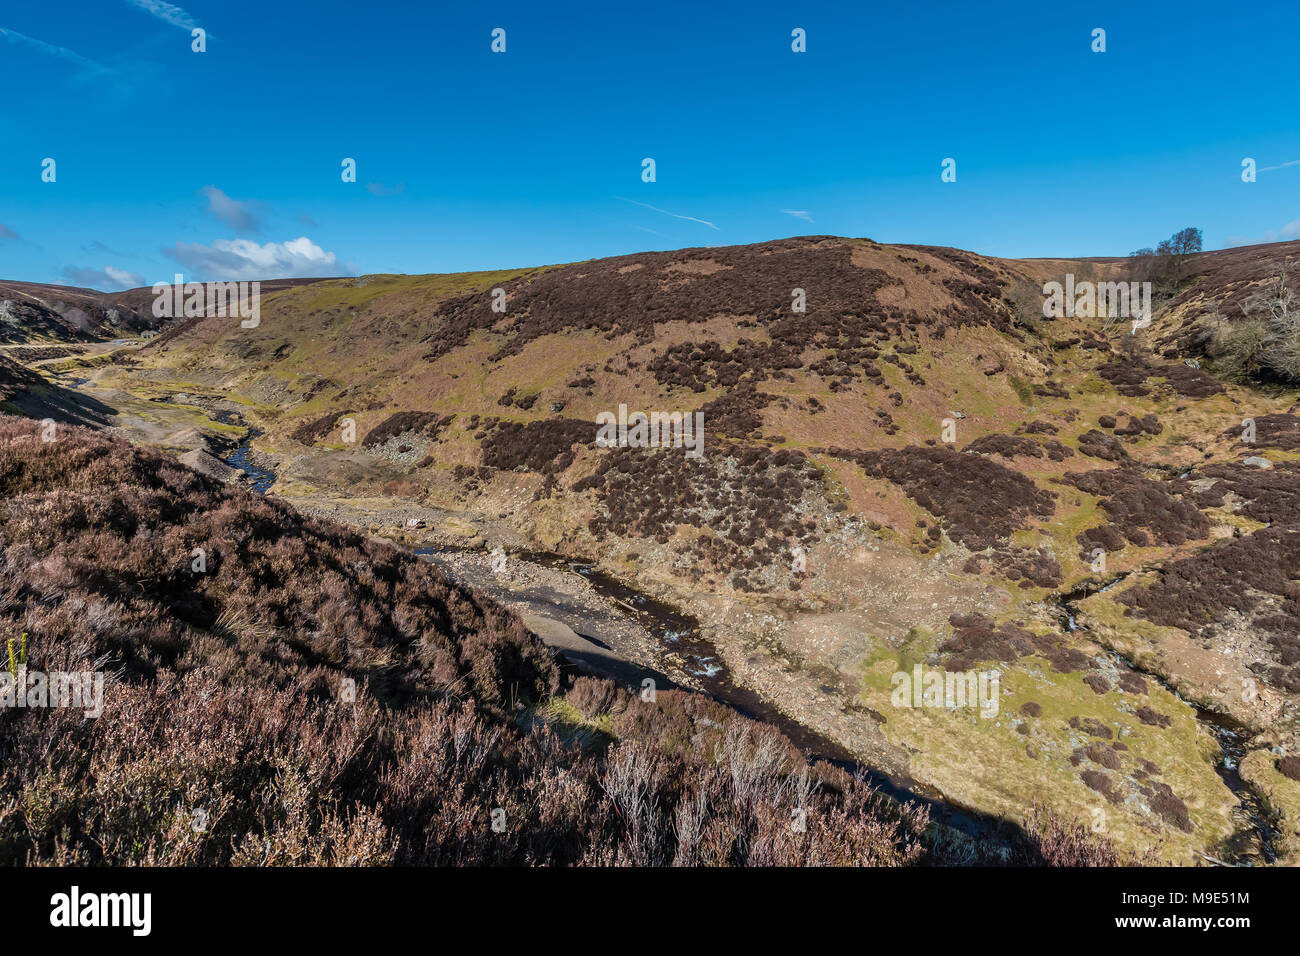 North Pennines landscape, the remains of the closed abandoned Sharnberry lead mine, Teesdale, UK - Stock Image